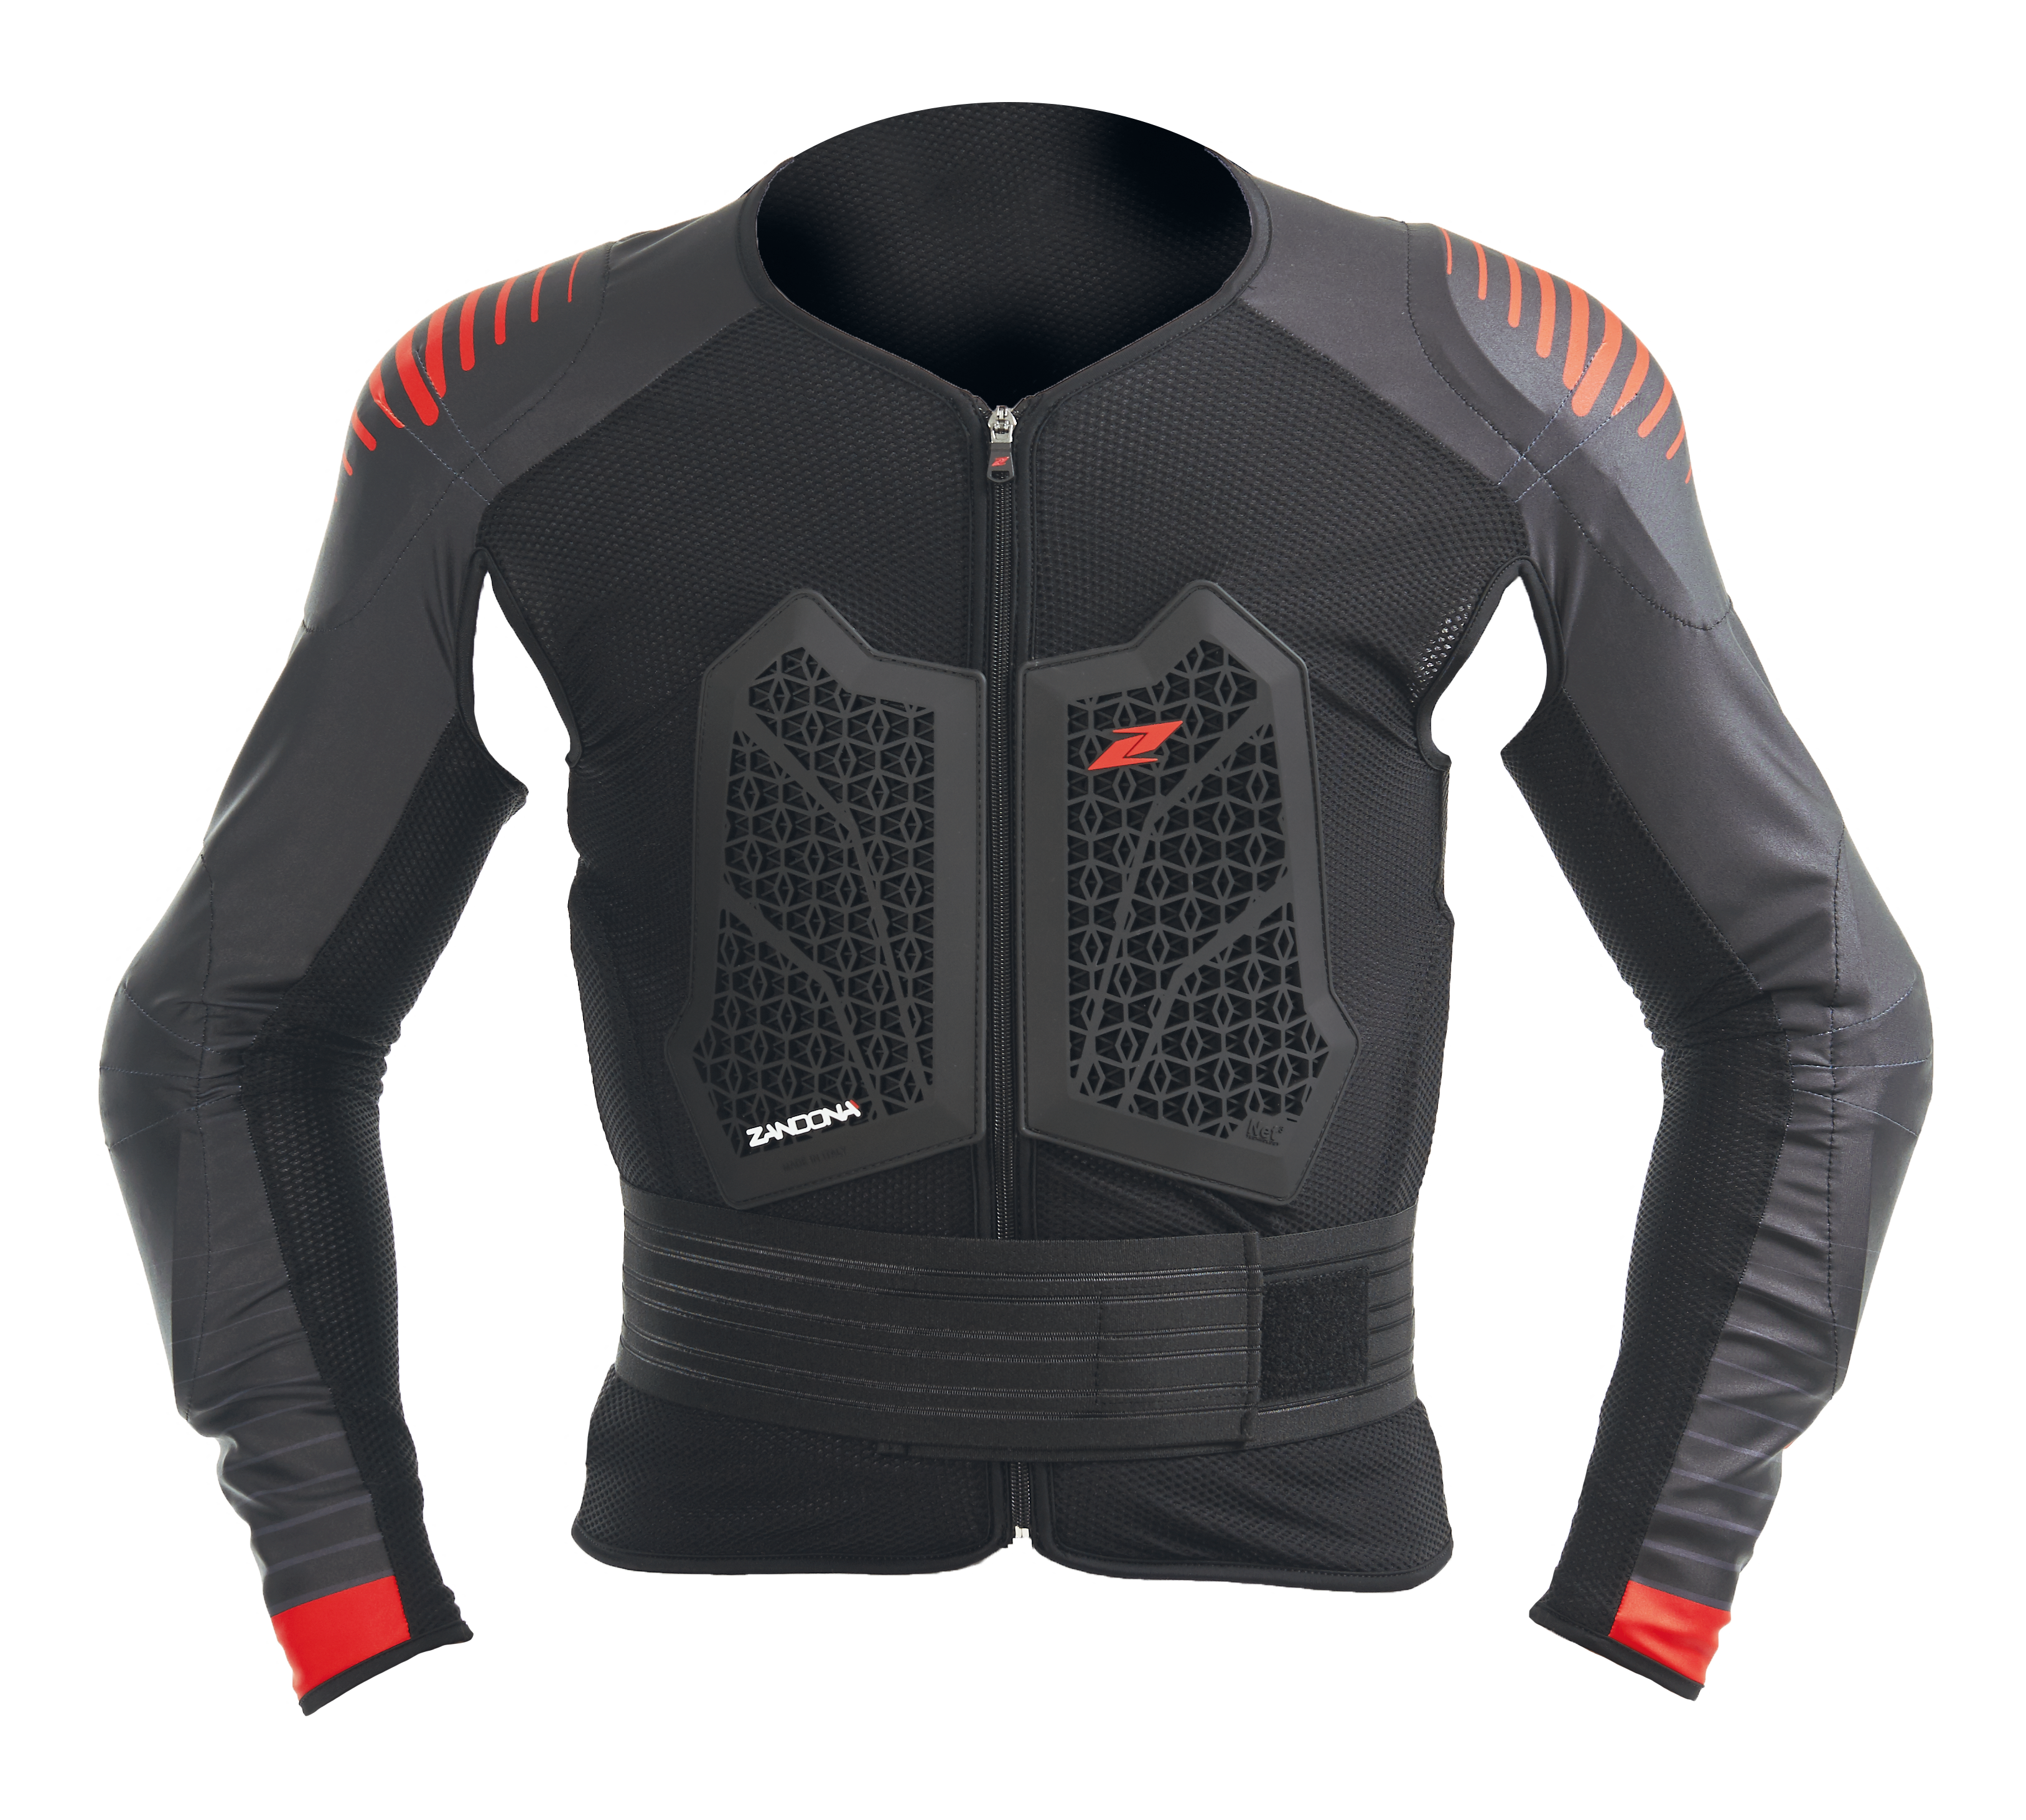 5617_Action-Jacket-x7_FRONT